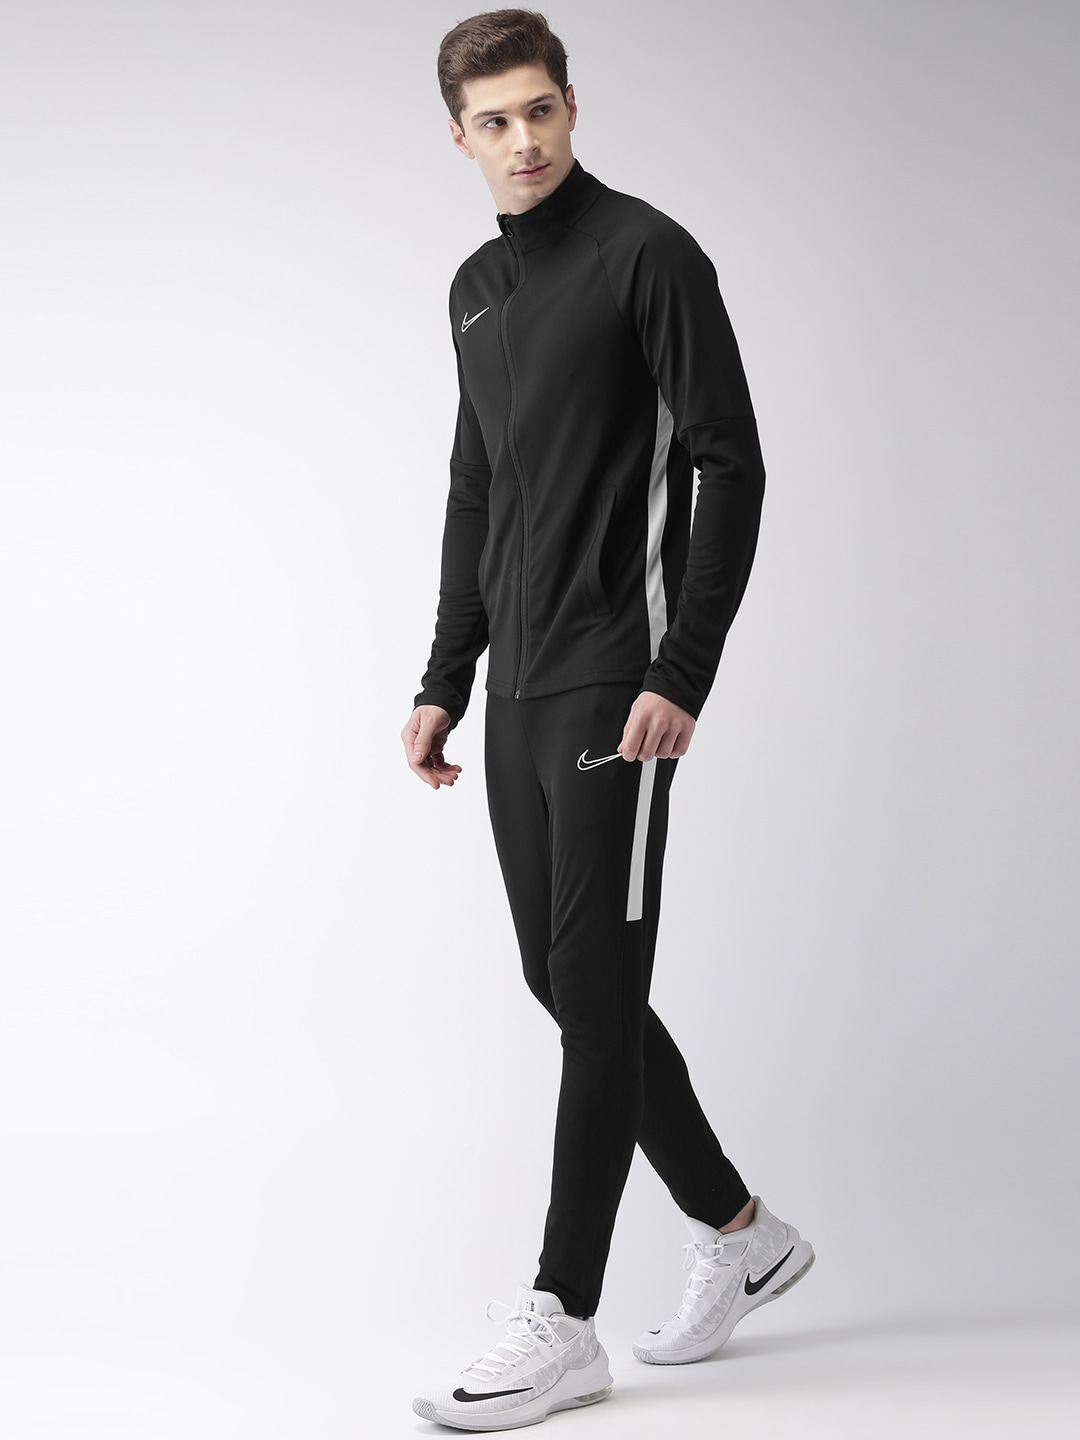 pantalon nike football homme